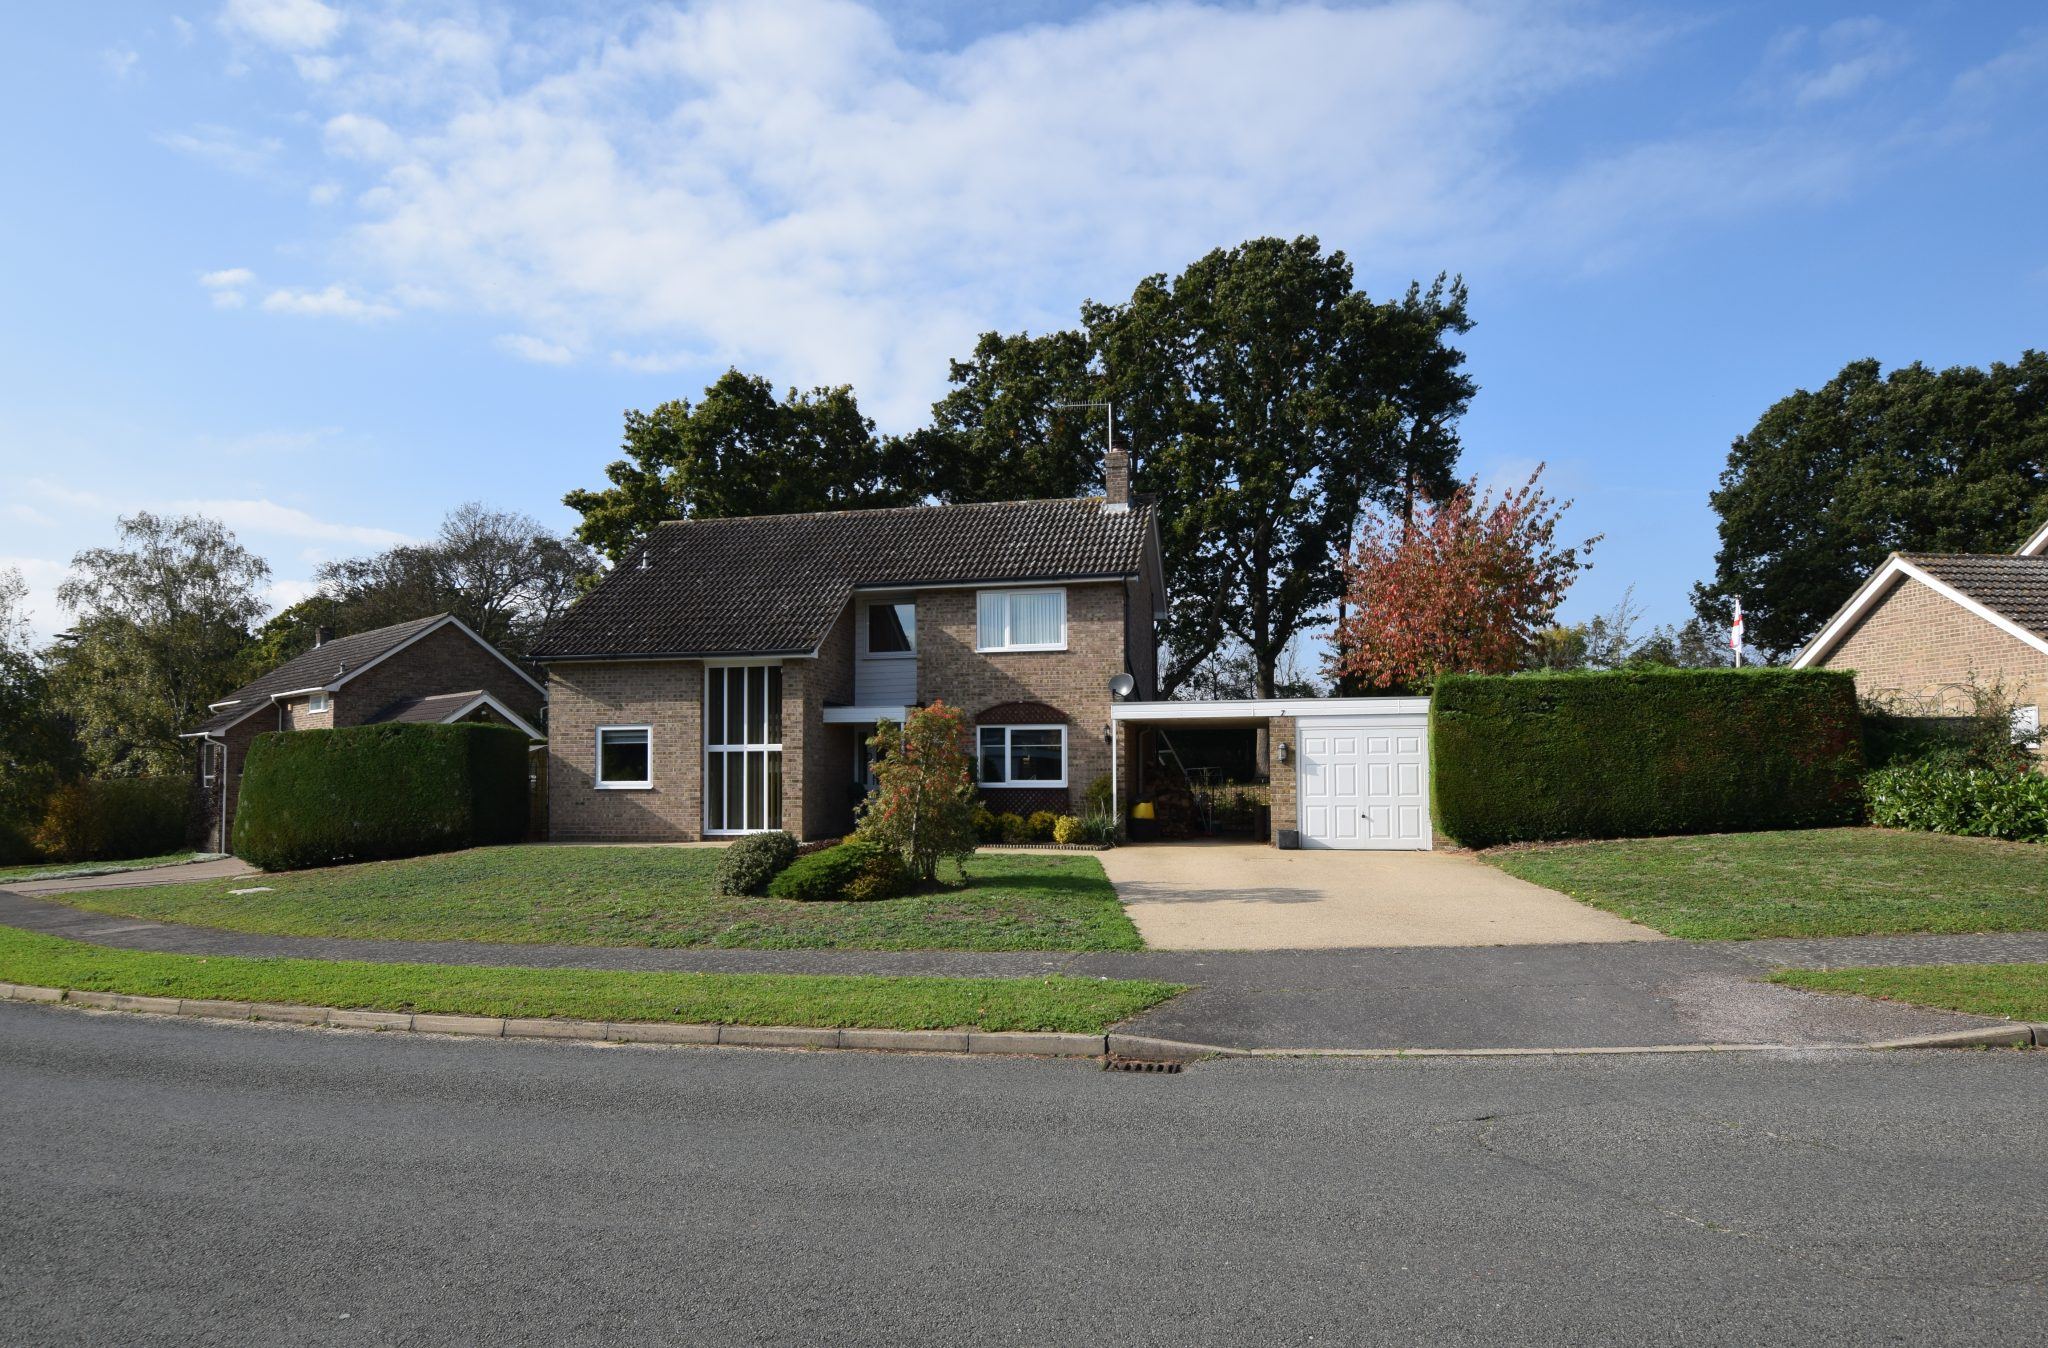 4 bedroom detached family house